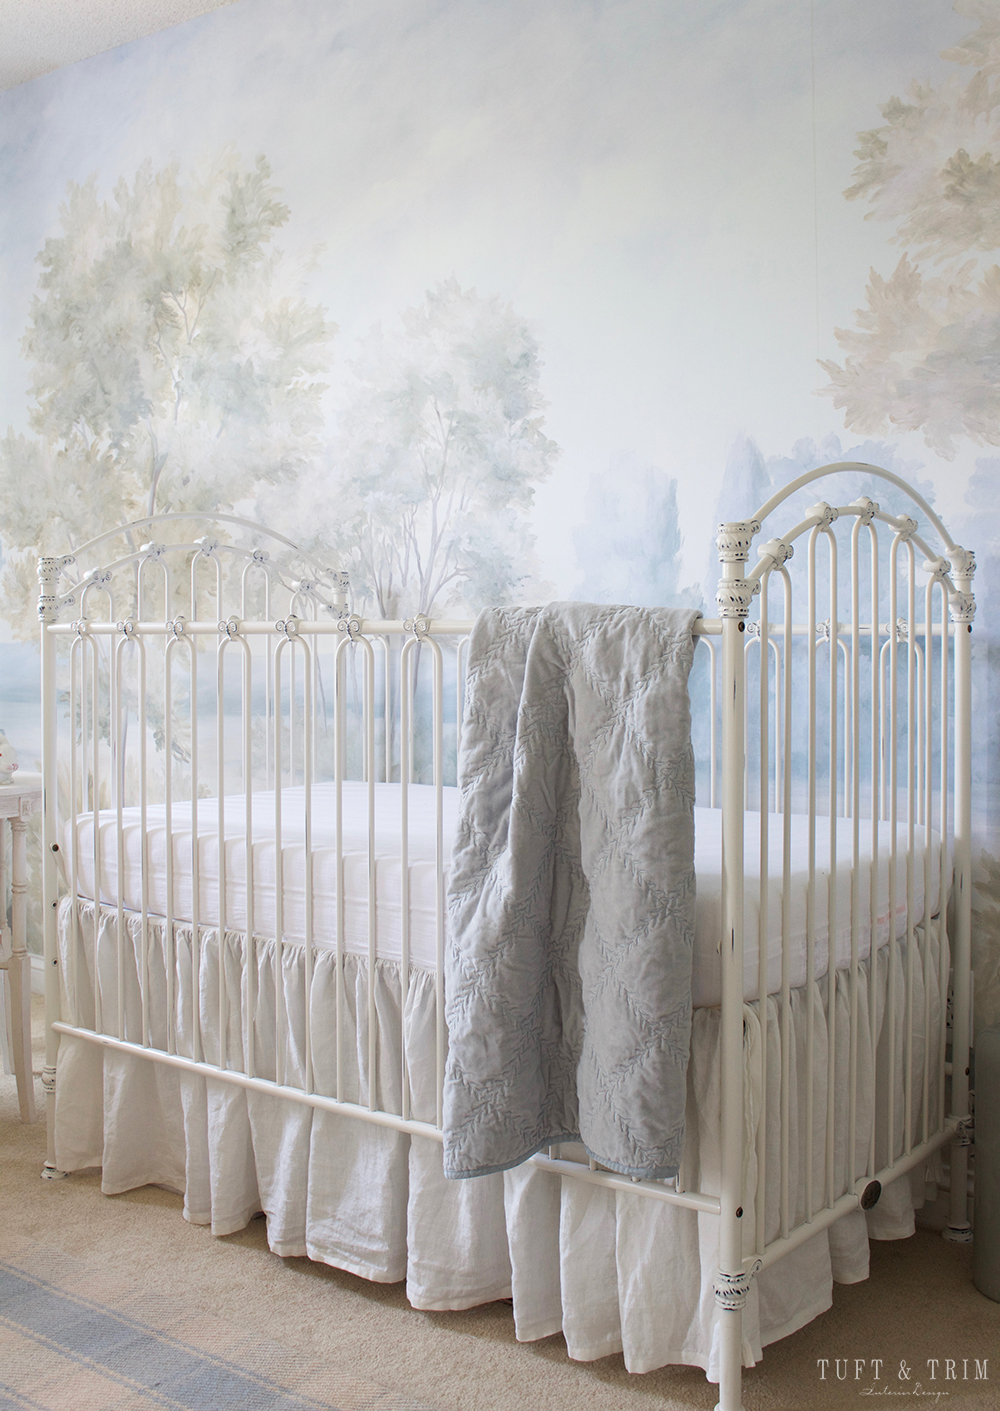 A Whimsical Nature Themed Nursery Fit